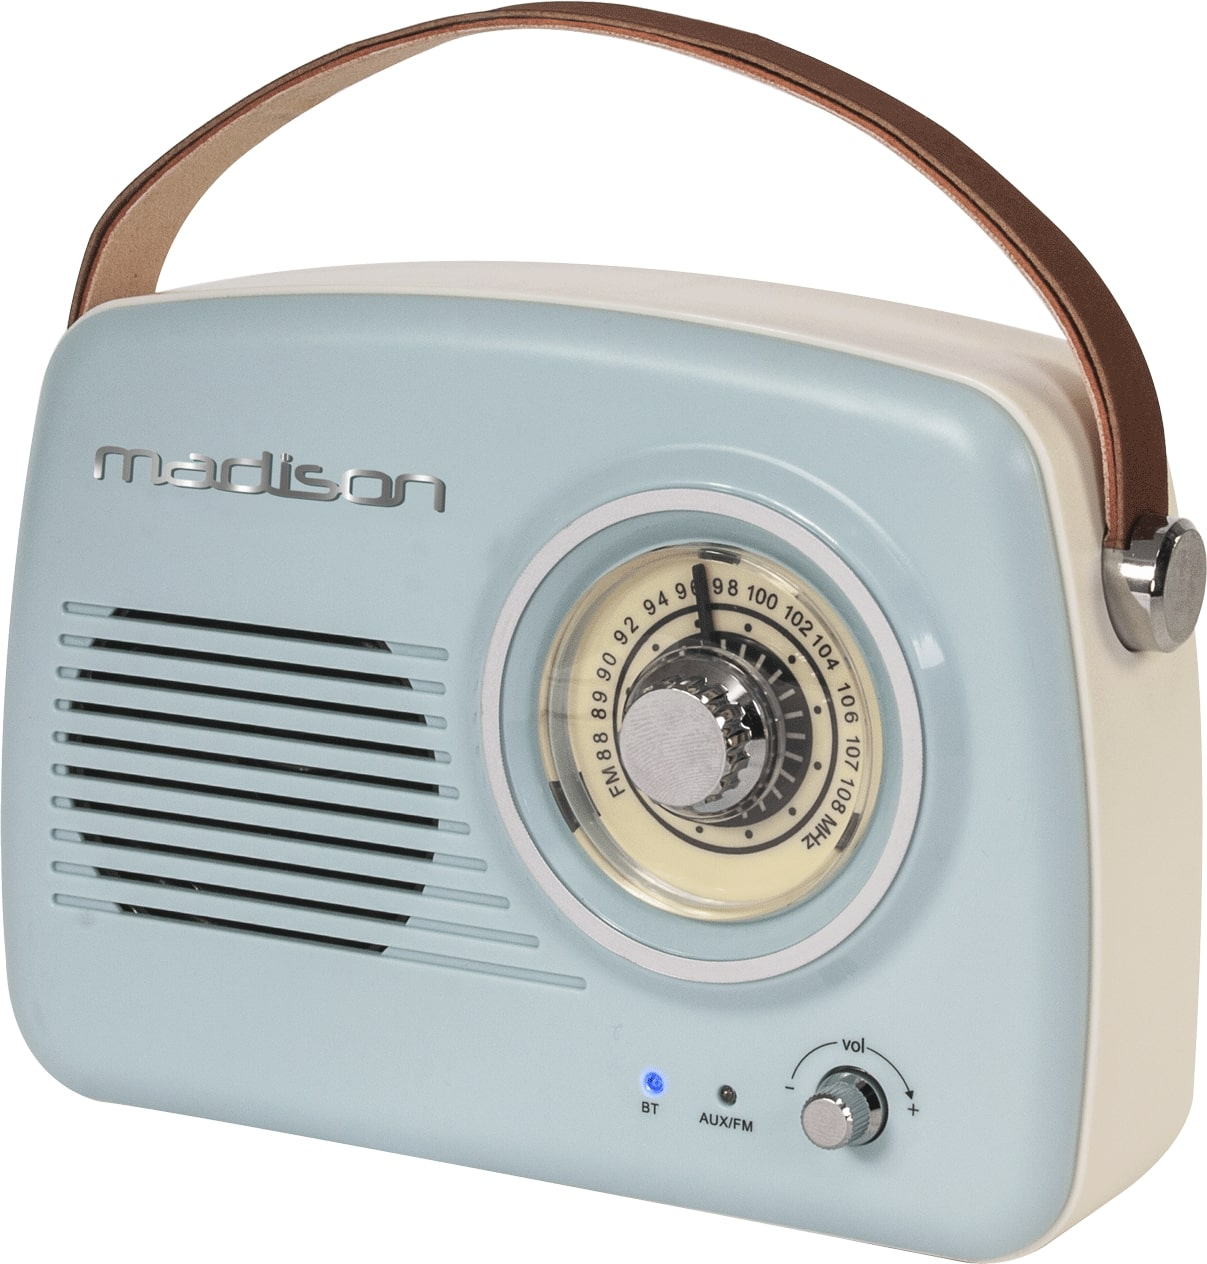 Madison retro radio m. bluetooth & FM